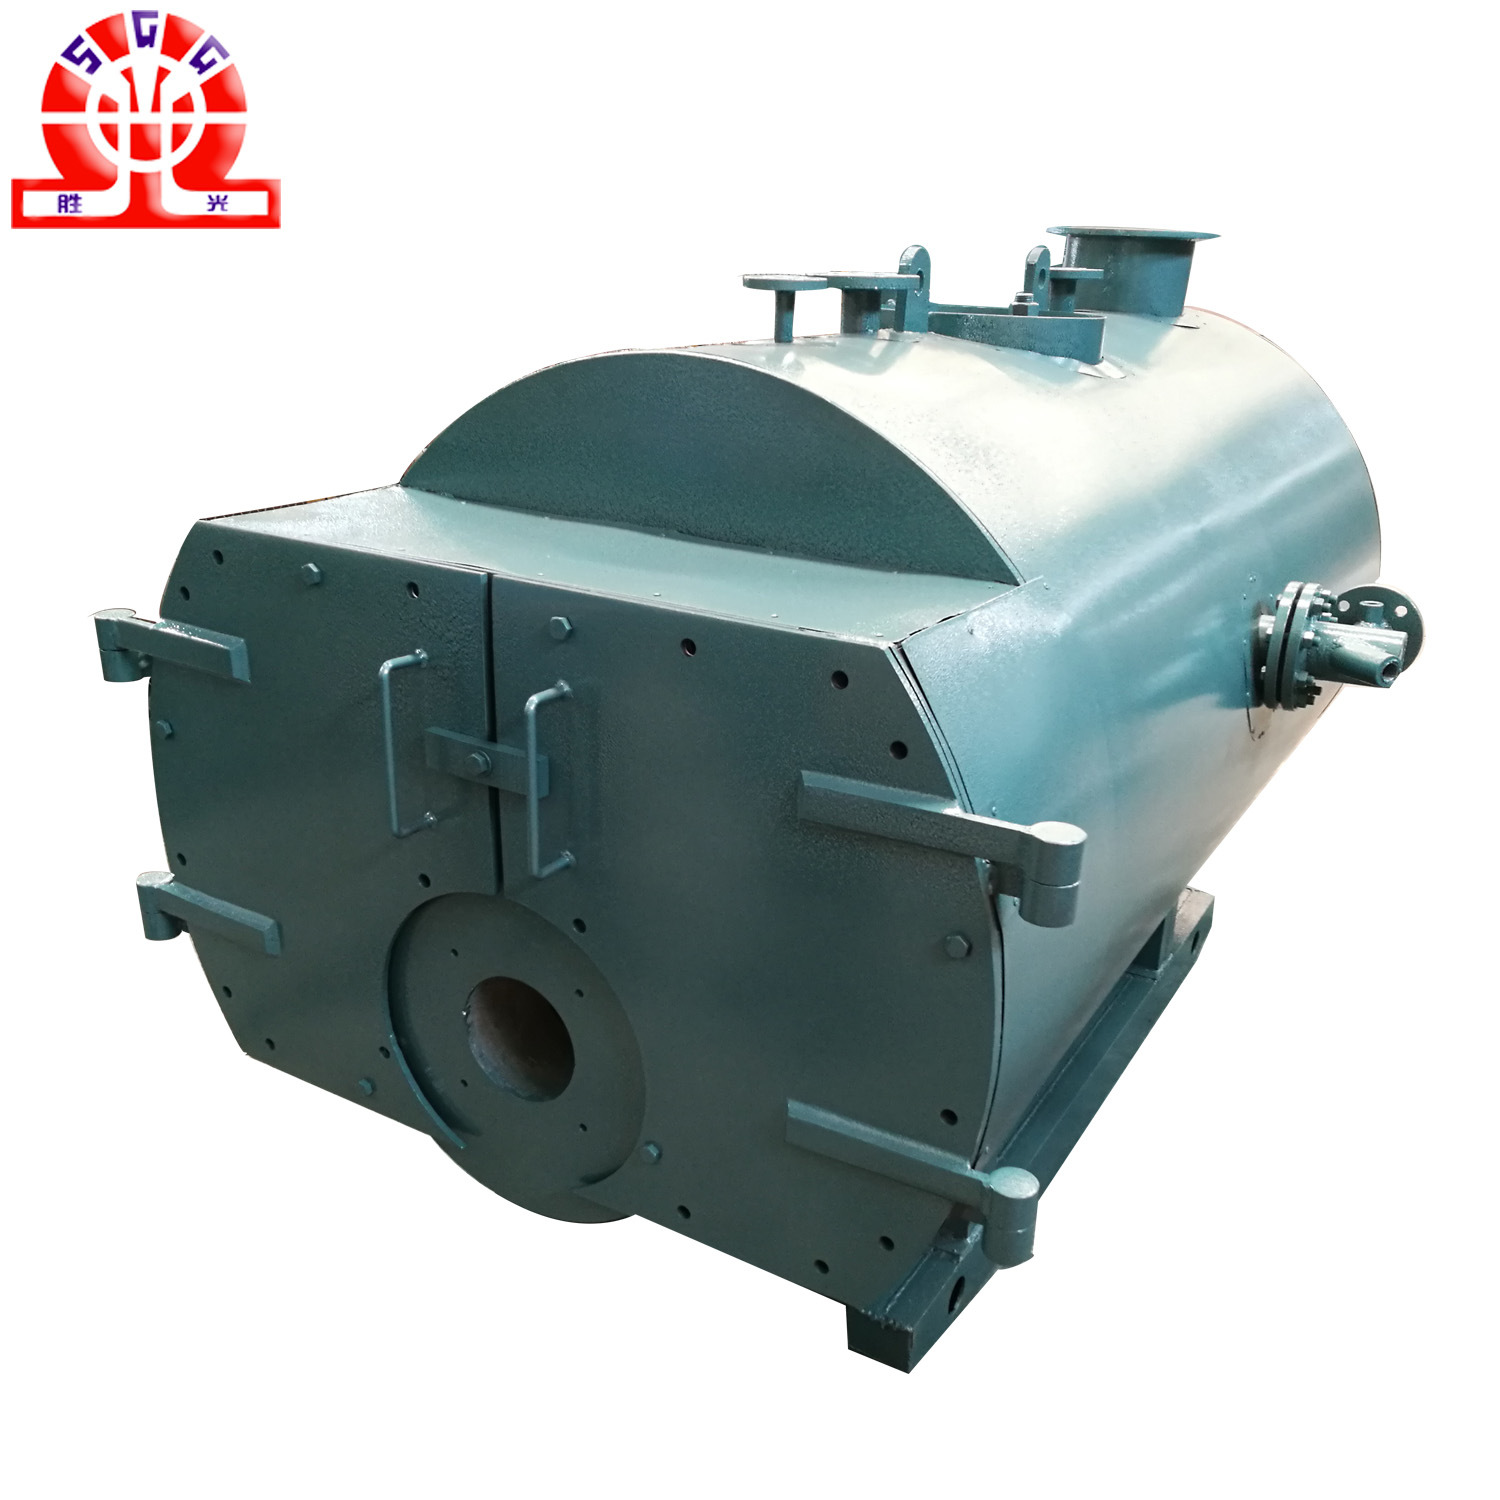 China High Efficiency Wet Back Diesel Oil Fired Steam Boiler - China ...